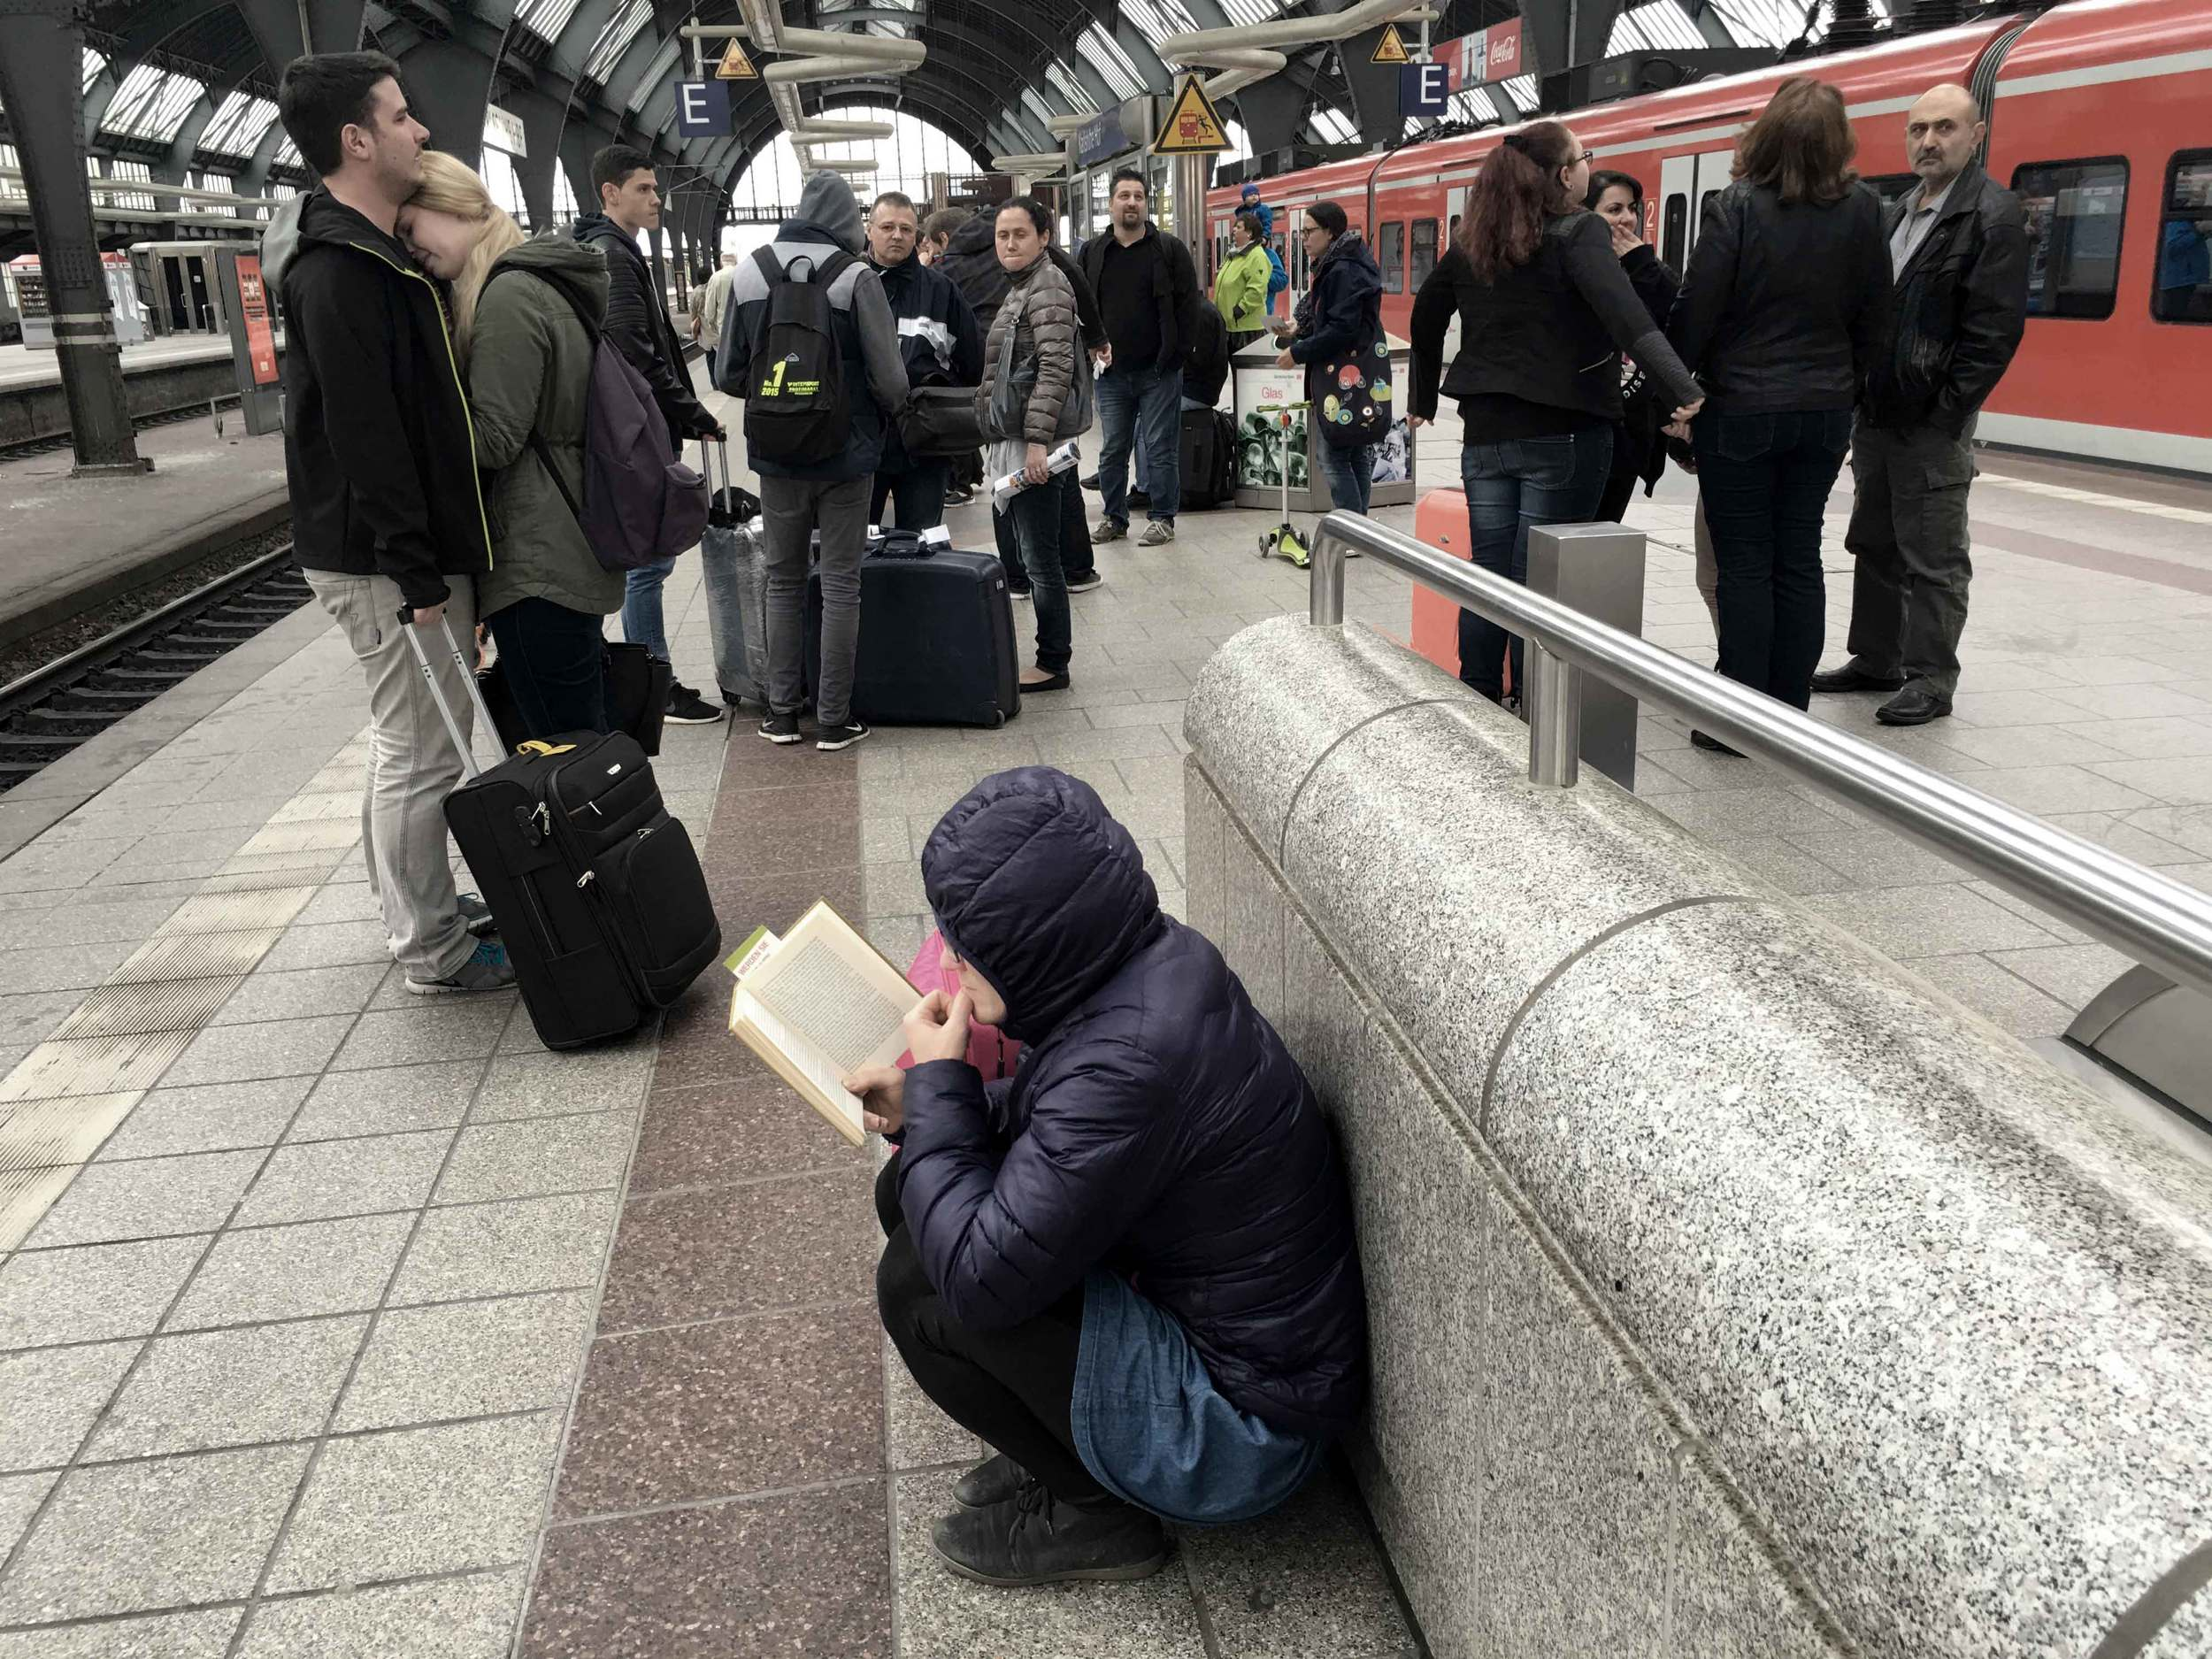 A platform in Germany, Karlsruhe railway station, girl reading a book on the platform, a couple hug and say goodby on the platform. Image©sourcingstyle.com